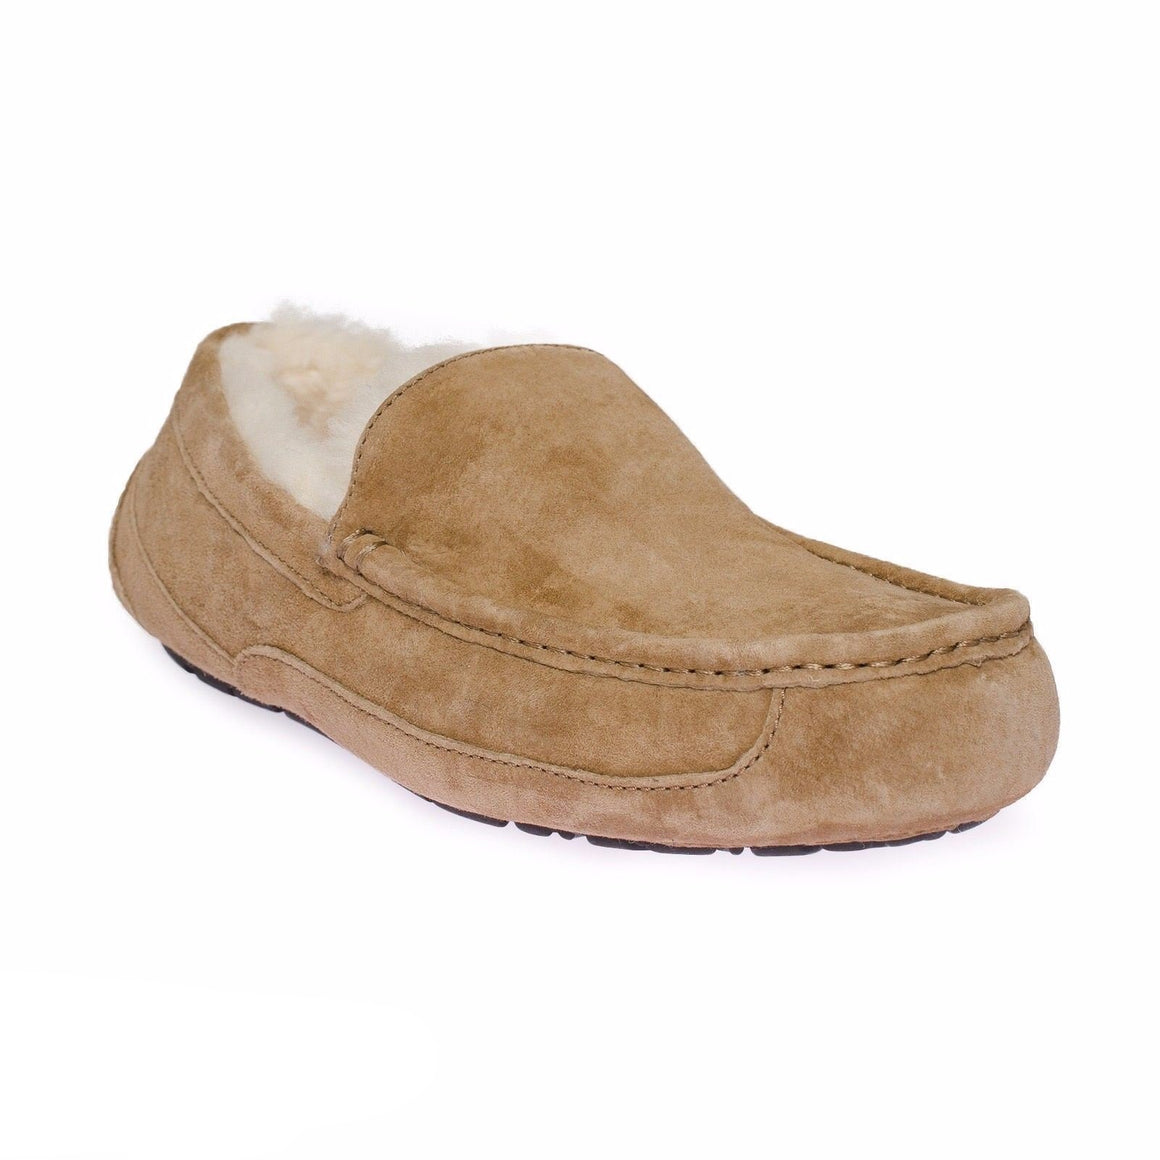 UGG Ascot Chestnut Slippers